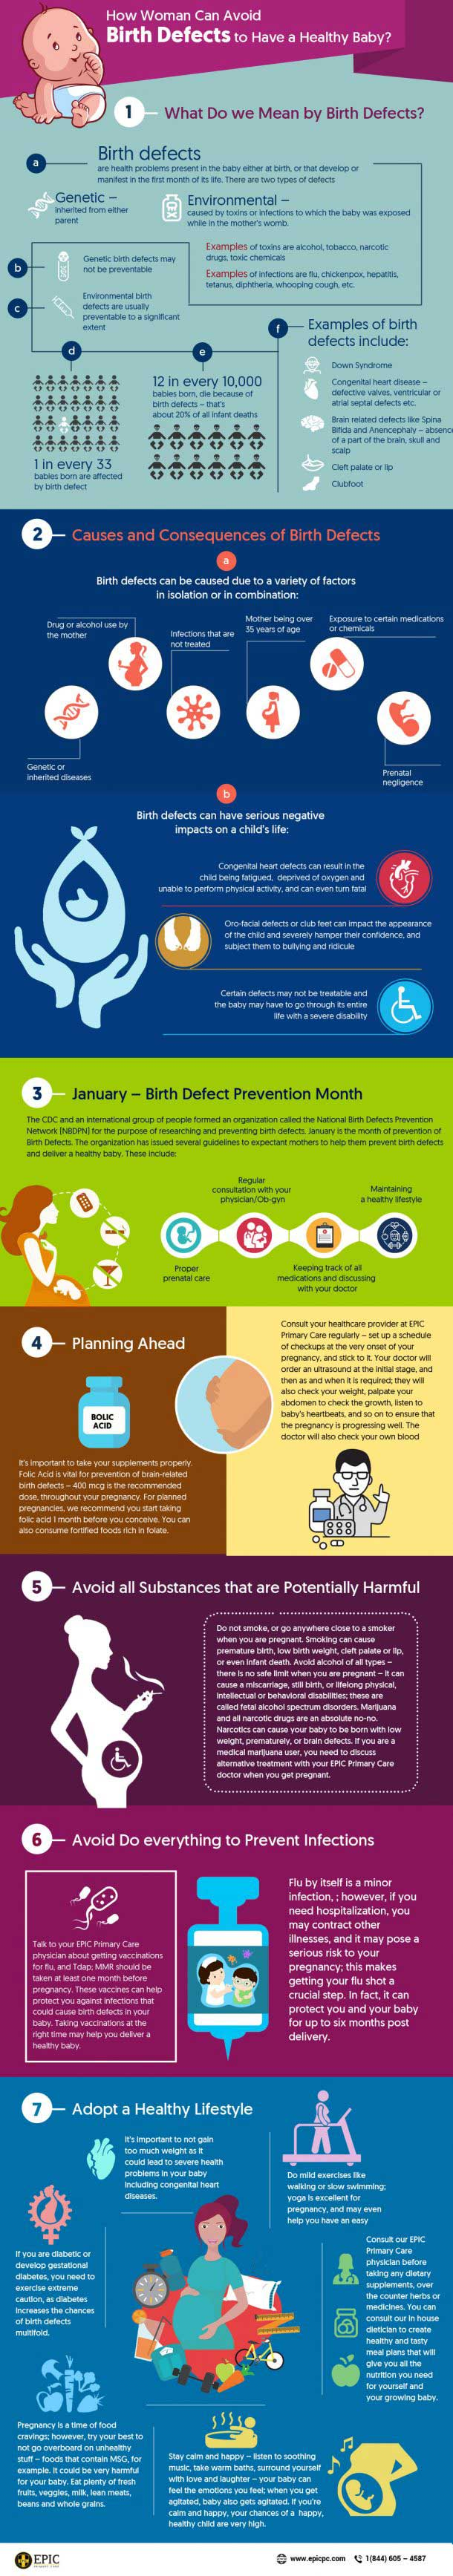 How Woman Can Avoid Birth Defects to Have a Healthy Baby? – Infographic